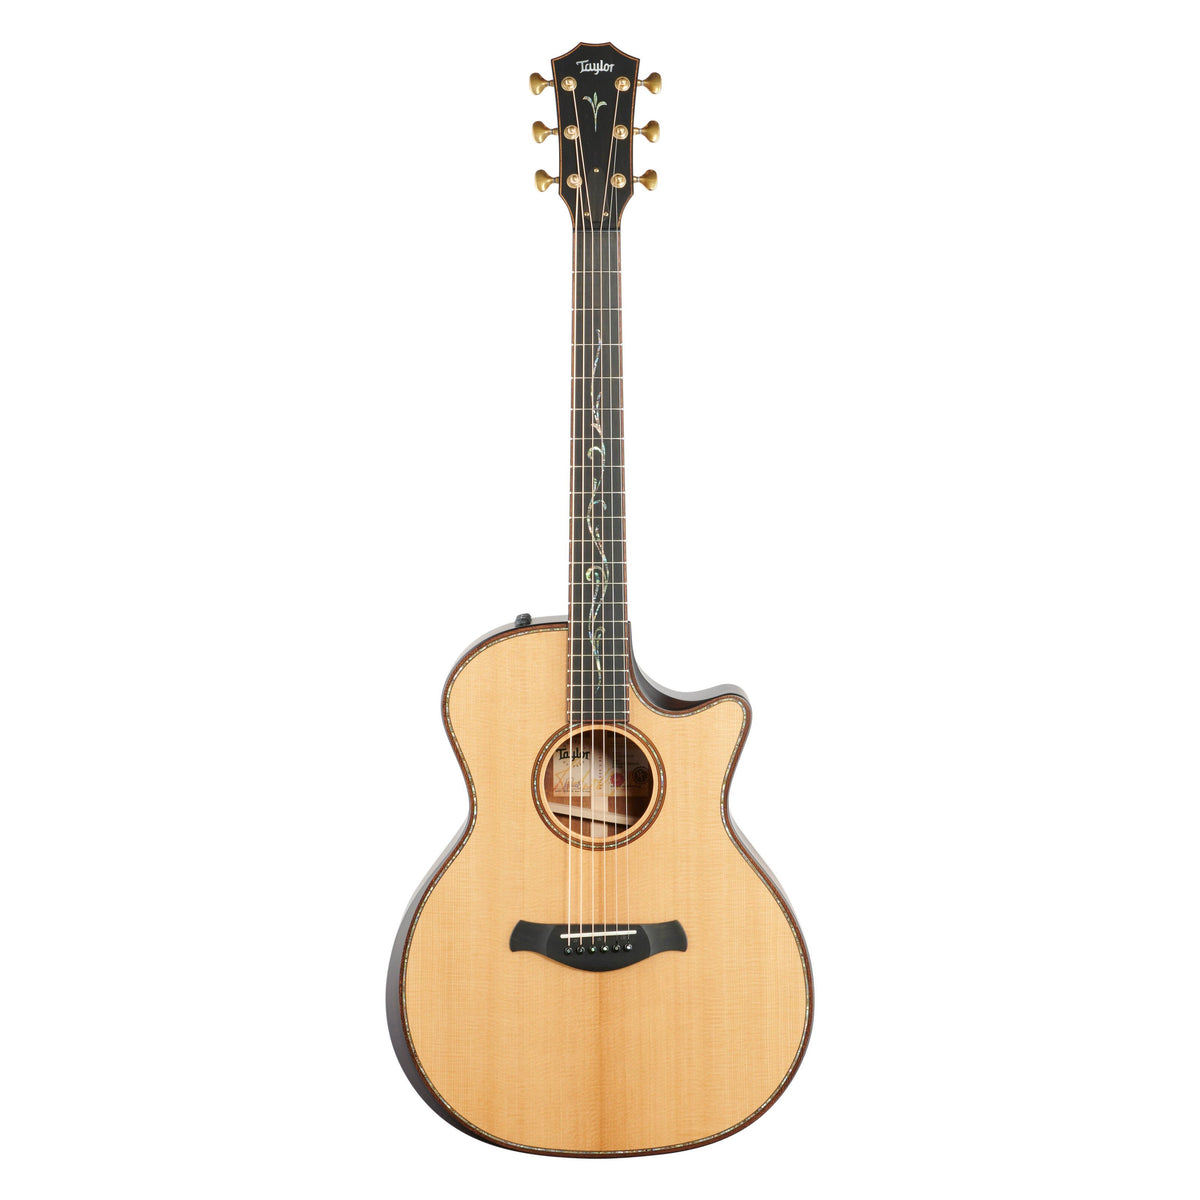 Taylor Builder's Edition K14ceV Grand Auditorium Acoustic-Electric Guitar, Kona Burst